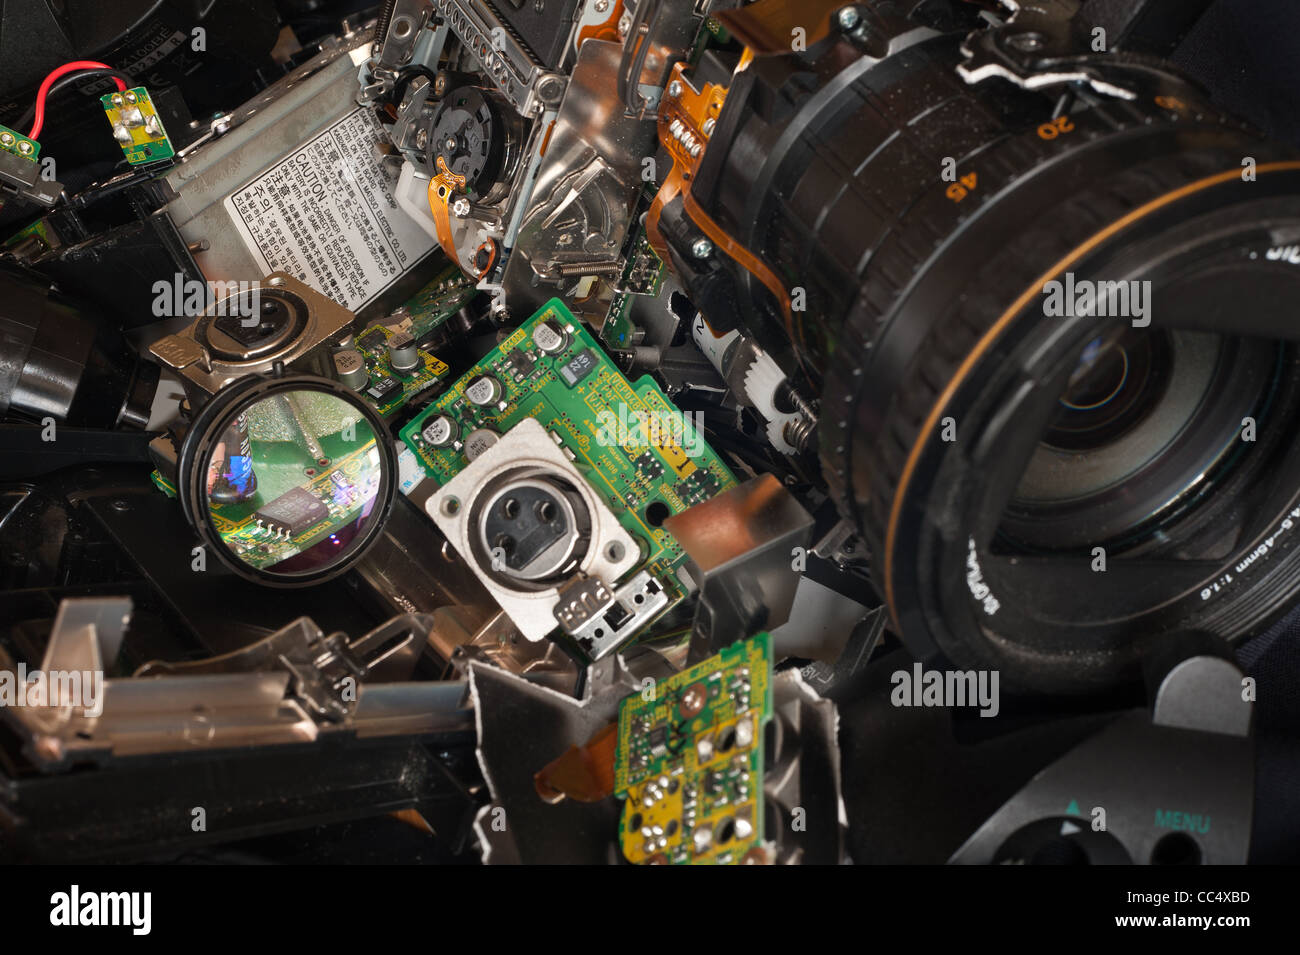 Component Parts Of A Broken High Resolution 3 Chip Digital Video Camera With Circuit Board Lens Vga